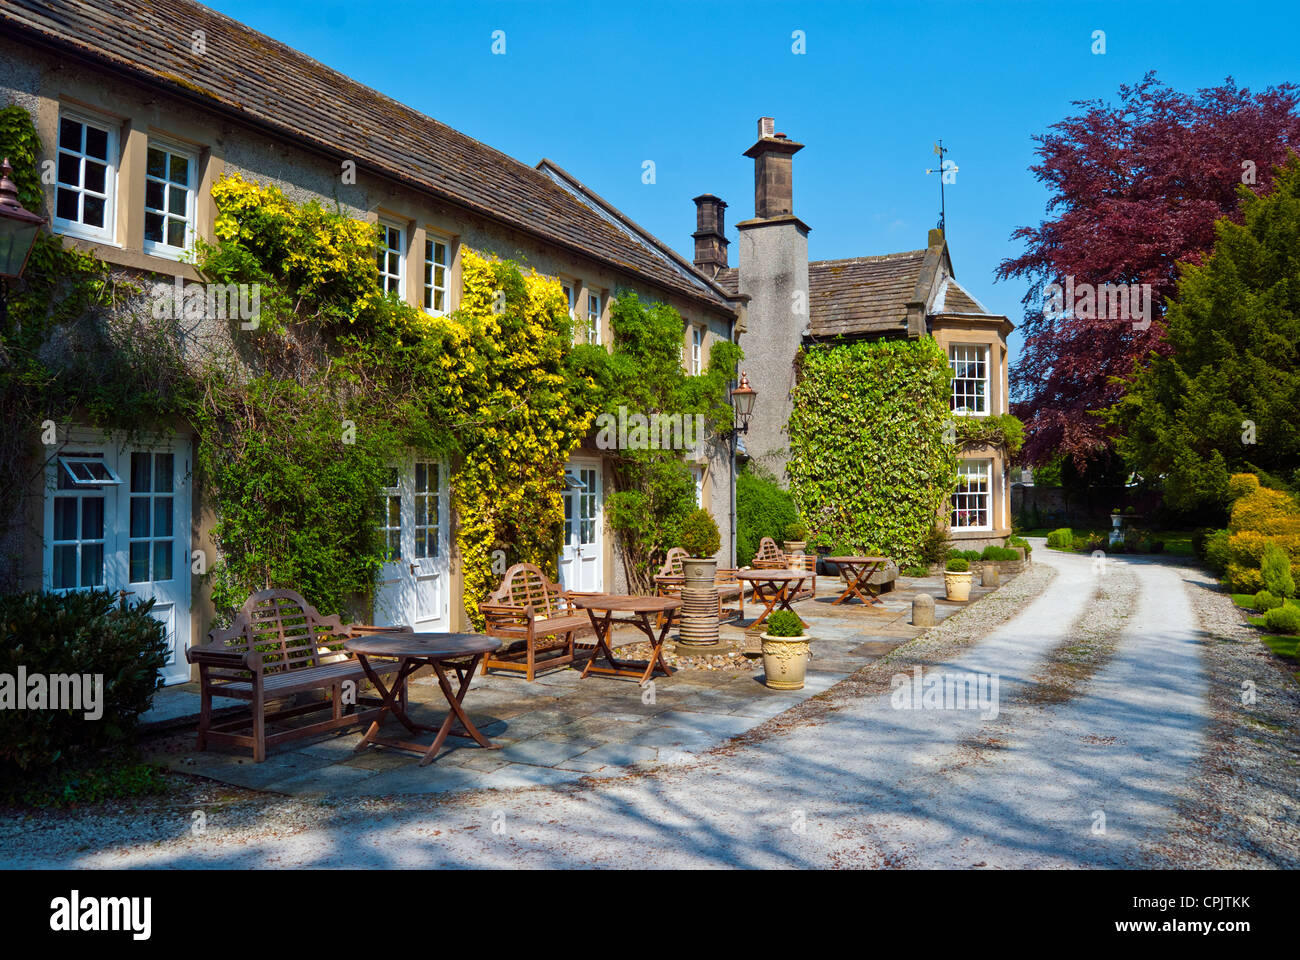 Riverside House Hotel and Restaurant, Ashford in the Water, Derbyshire Stock Photo